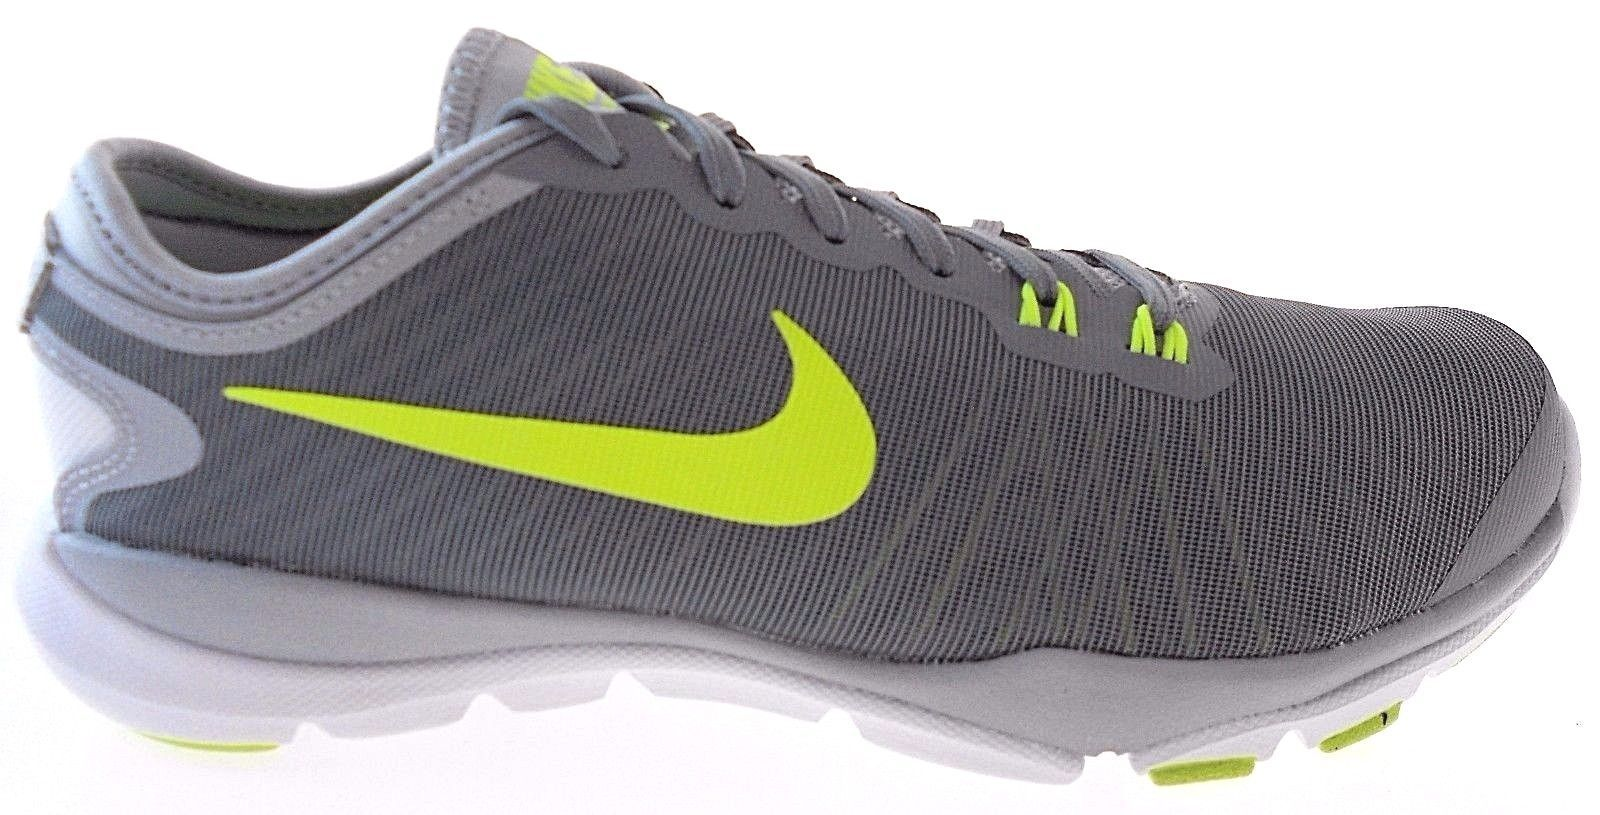 Primary image for NIKE FLEX SUPREME TR 4(W) WOMEN'S GREY RUNNING (W)WIDE SHOES, #823668-003